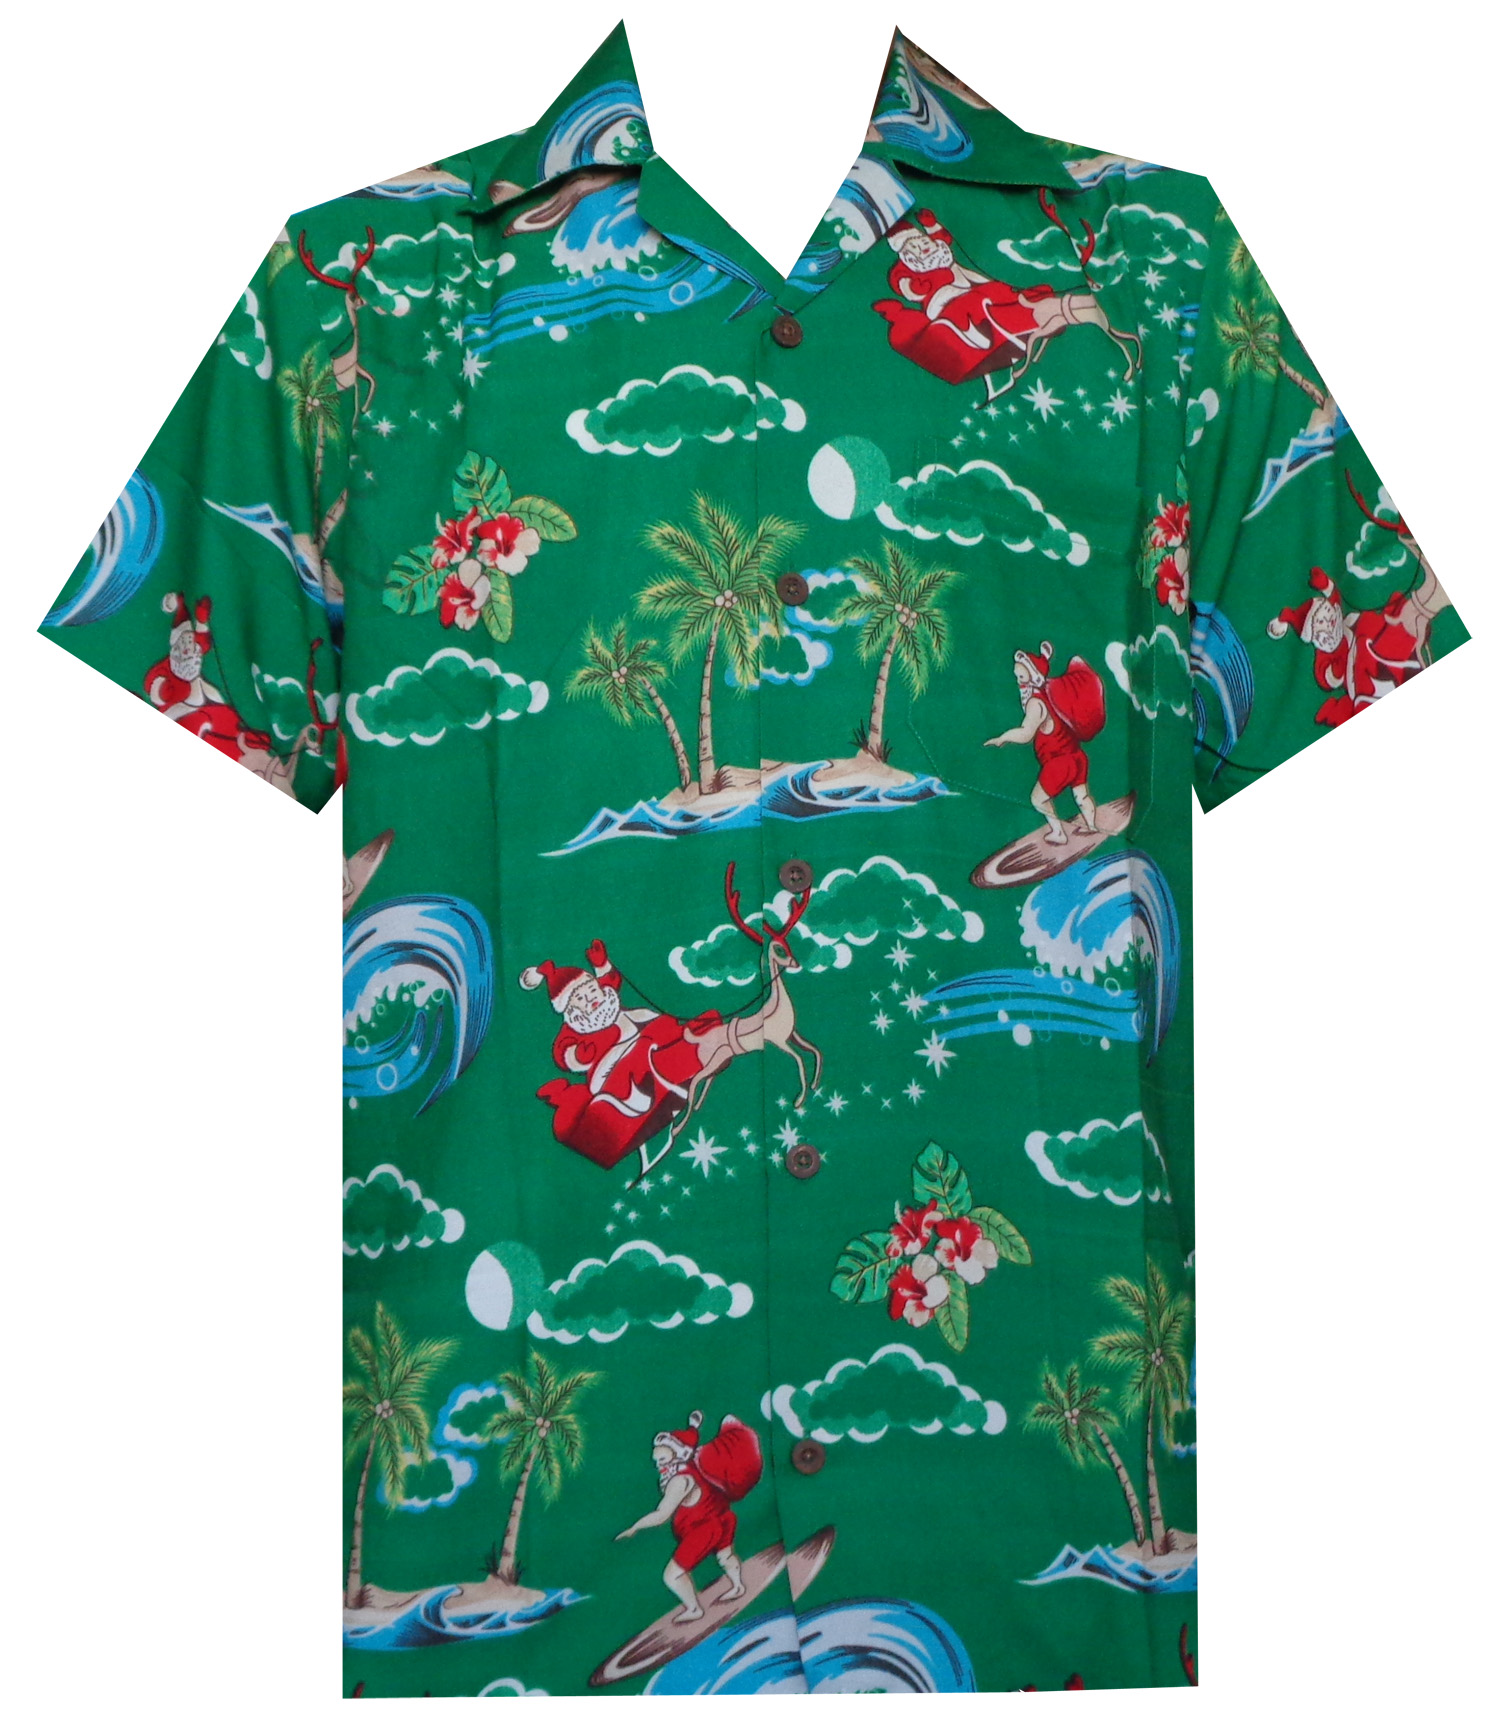 Christmas Hawaiian Shirt Australia.Hawaiian Shirt Mens Christmas Santa Claus Party Aloha Holiday Beach Ebay